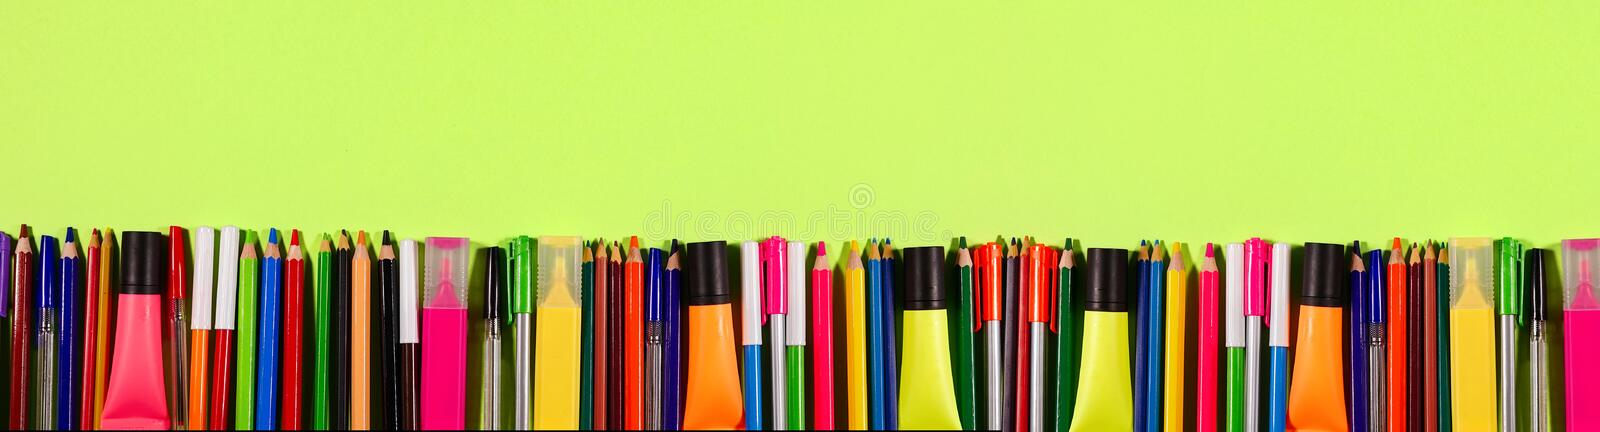 School and Office Tools royalty free stock image